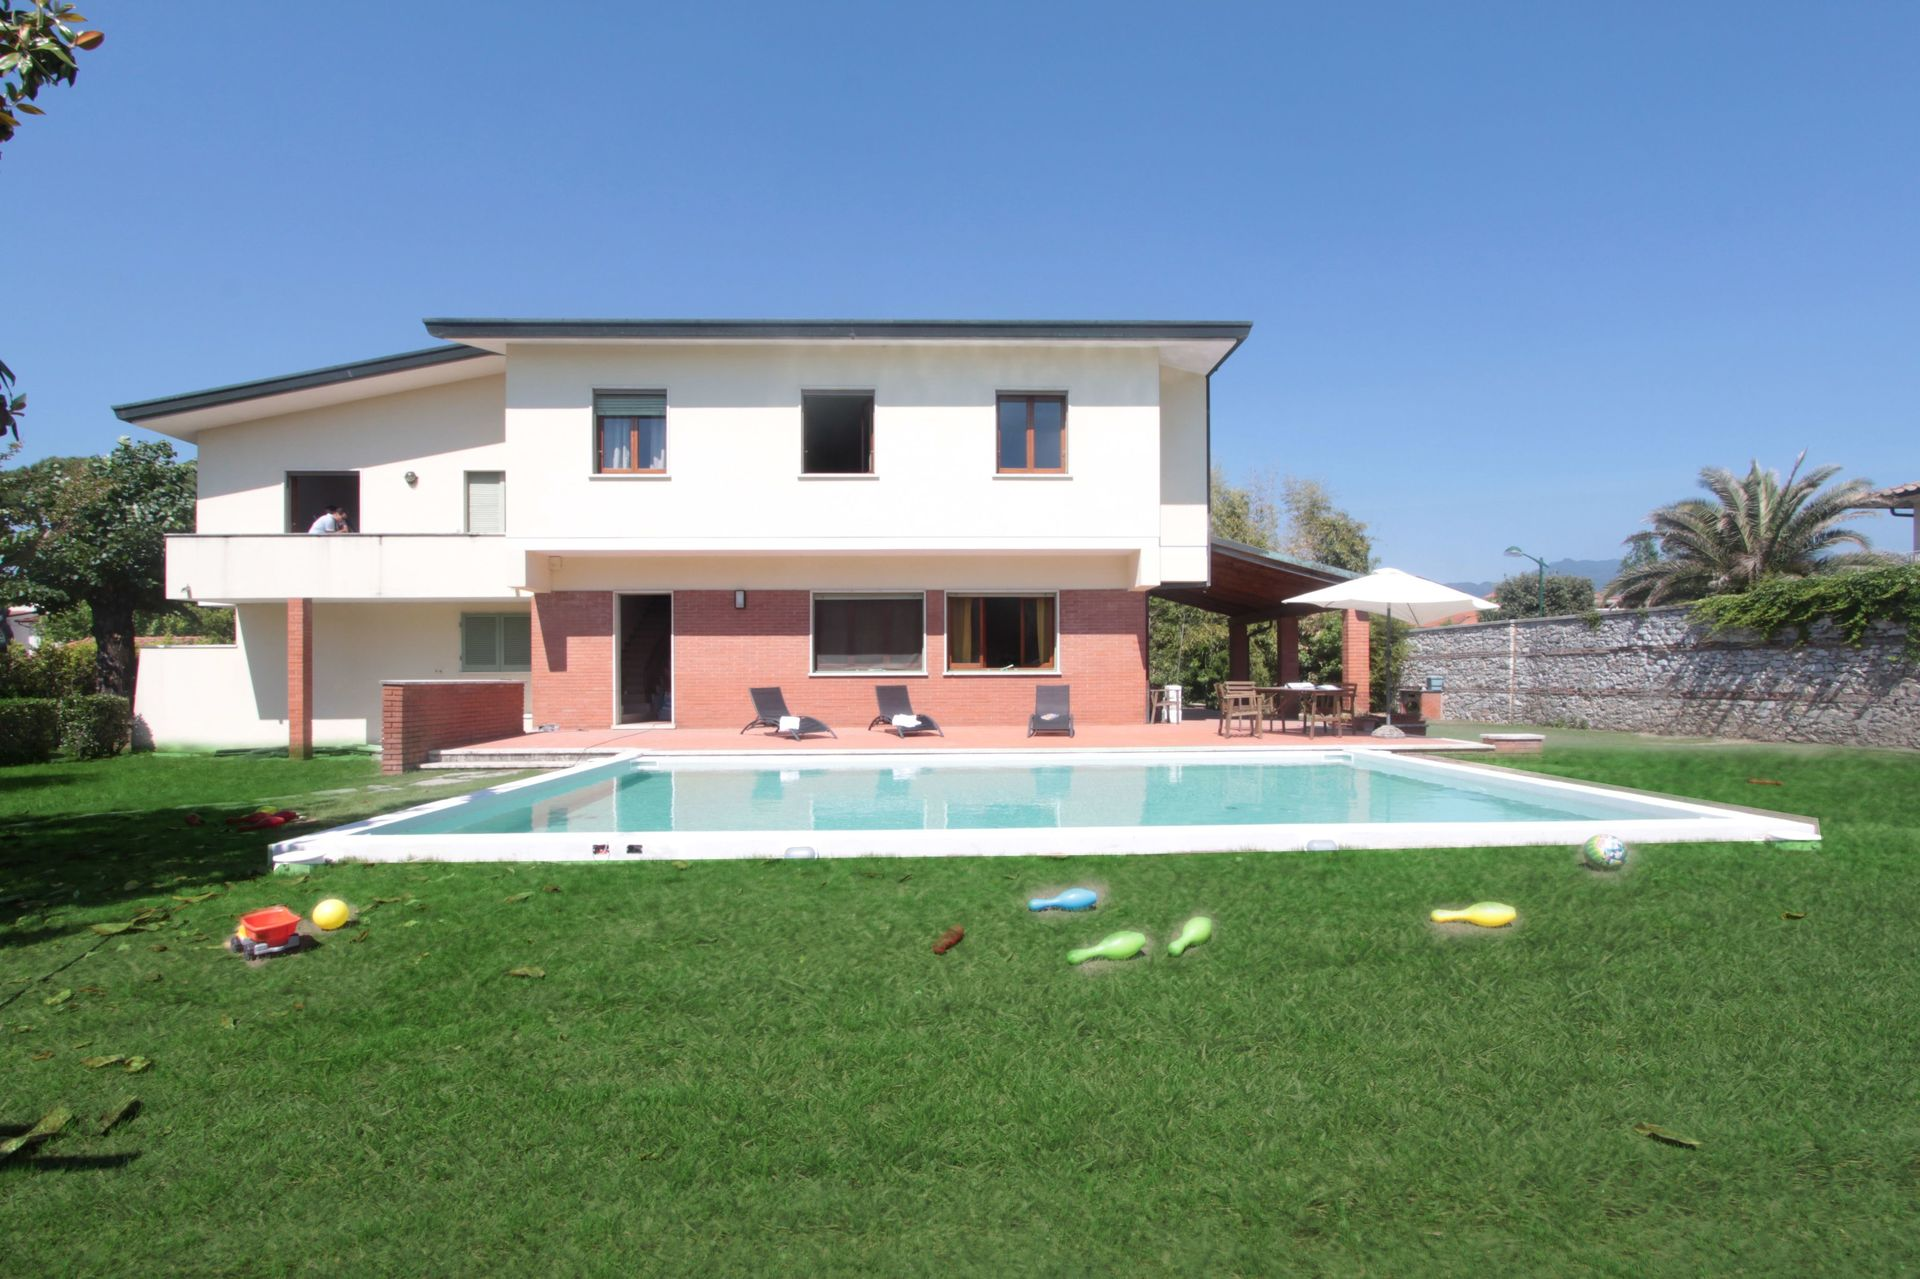 Italian Case Forte Dei Marmi mauro's house: villa that sleeps 11 people in 6 bedrooms